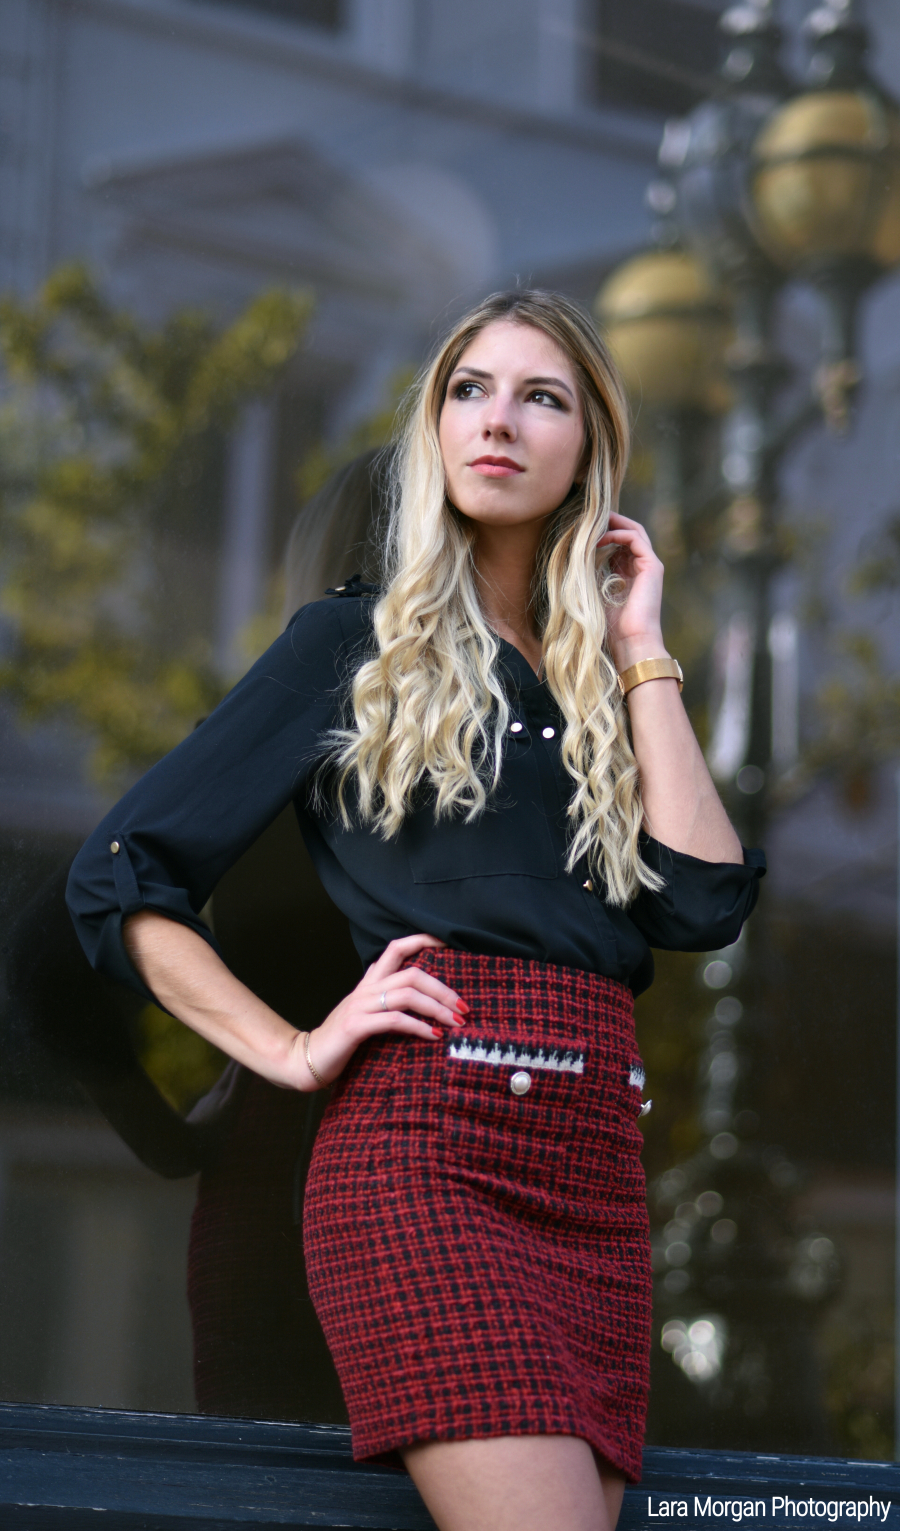 Street fashion from Christina / Photography by Lara Morgan, Model Christina Demy, Makeup by Christina Demy, Post processing by Lara Morgan / Uploaded 21st September 2019 @ 10:03 PM